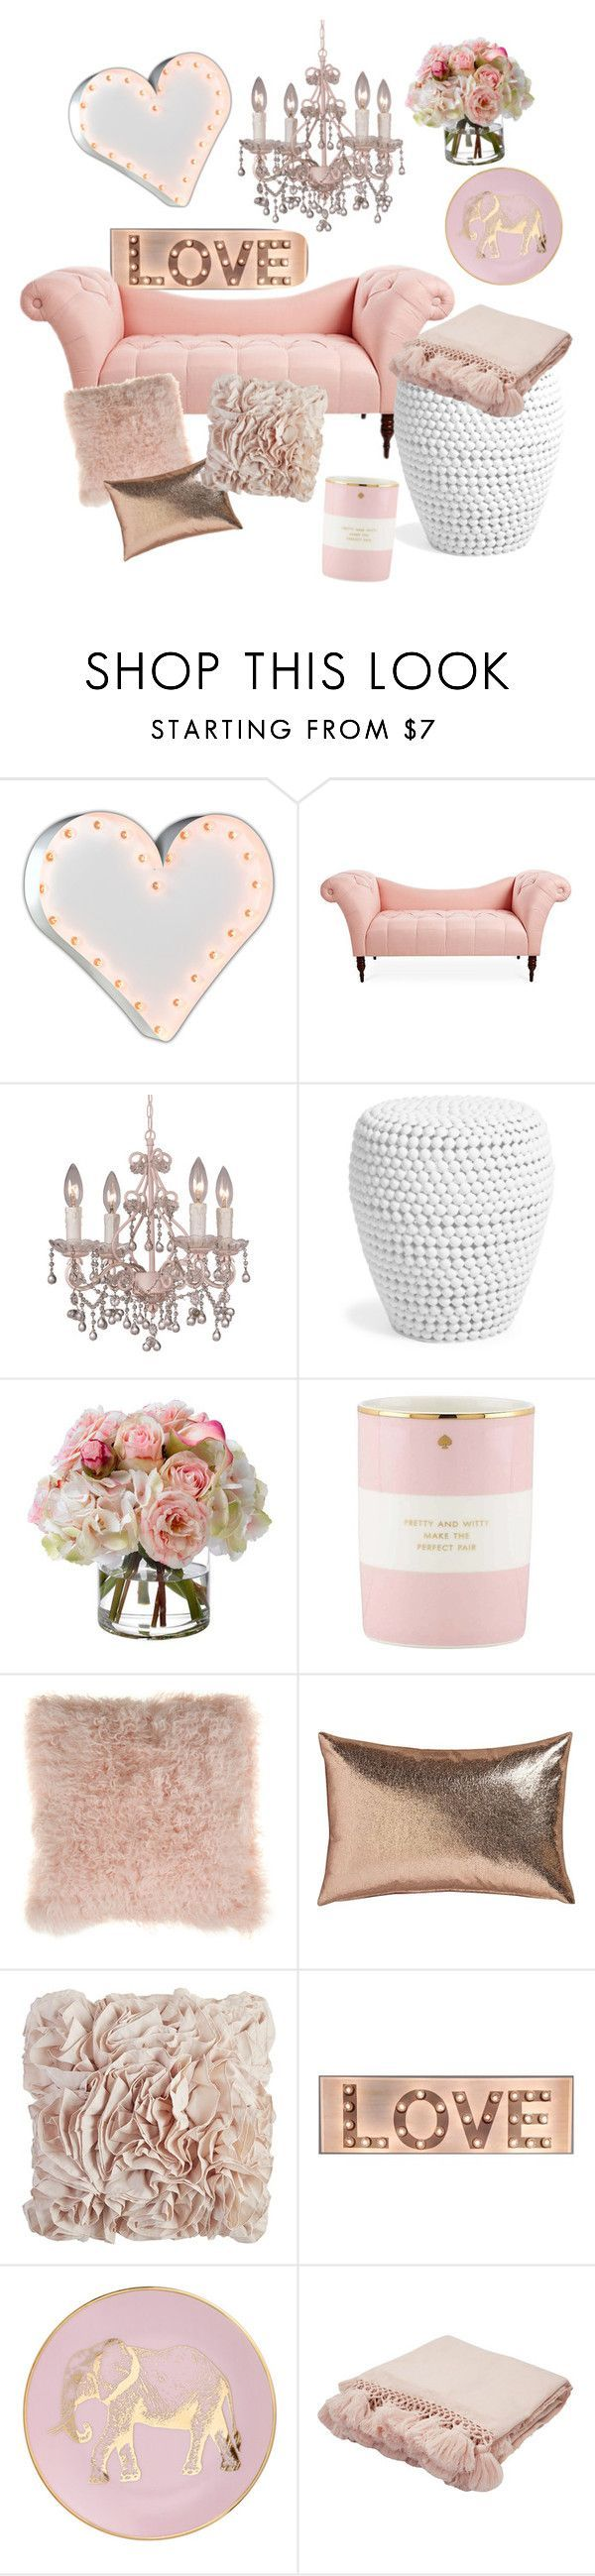 """The love room"" by evelyn-anita on Polyvore featuring interior, interiors, interior design, home, home decor, interior decorating, Vintage Marquee Lights, Crystorama, Diane James and Kate Spade"